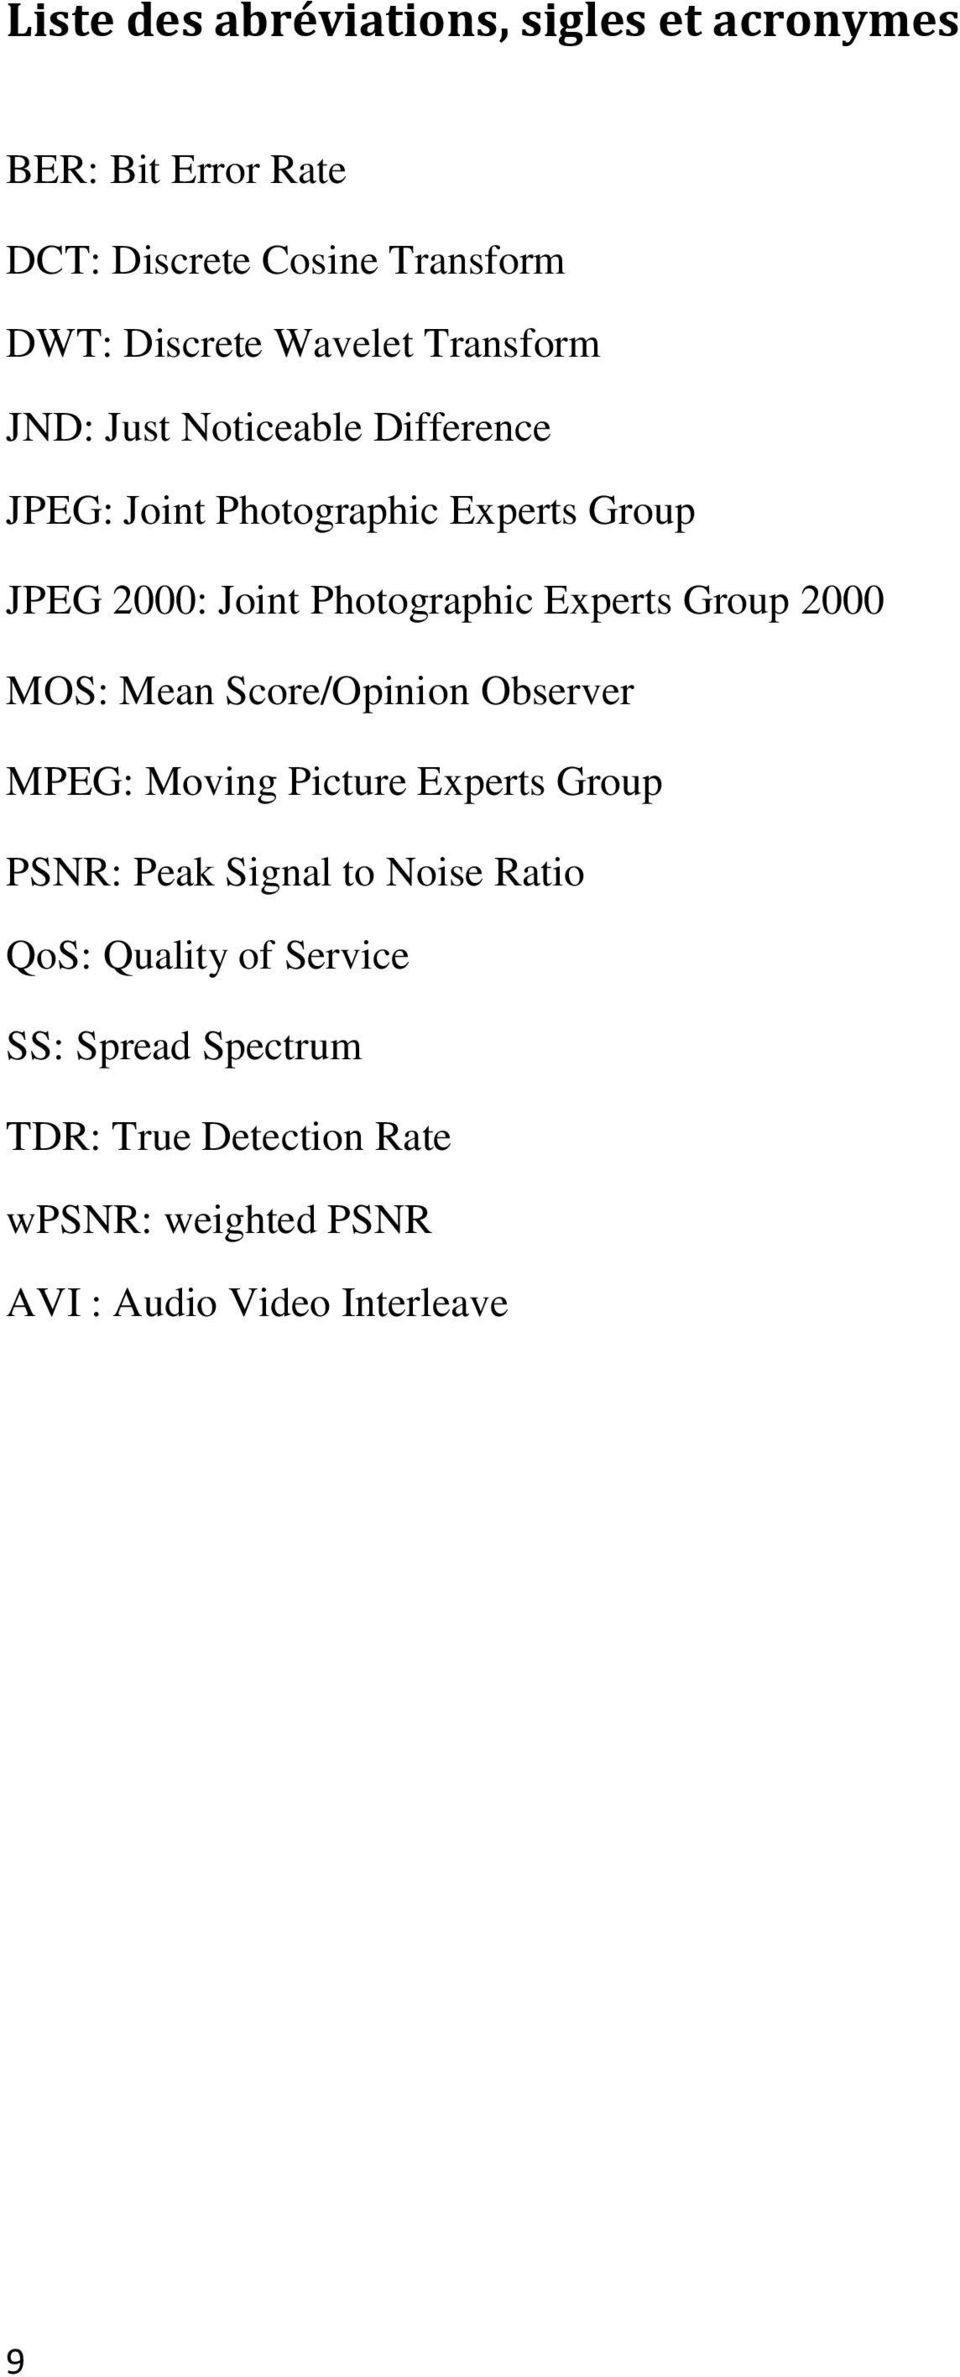 Experts Group 2000 MOS: Mean Score/Opinion Observer MPEG: Moving Picture Experts Group PSNR: Peak Signal to Noise